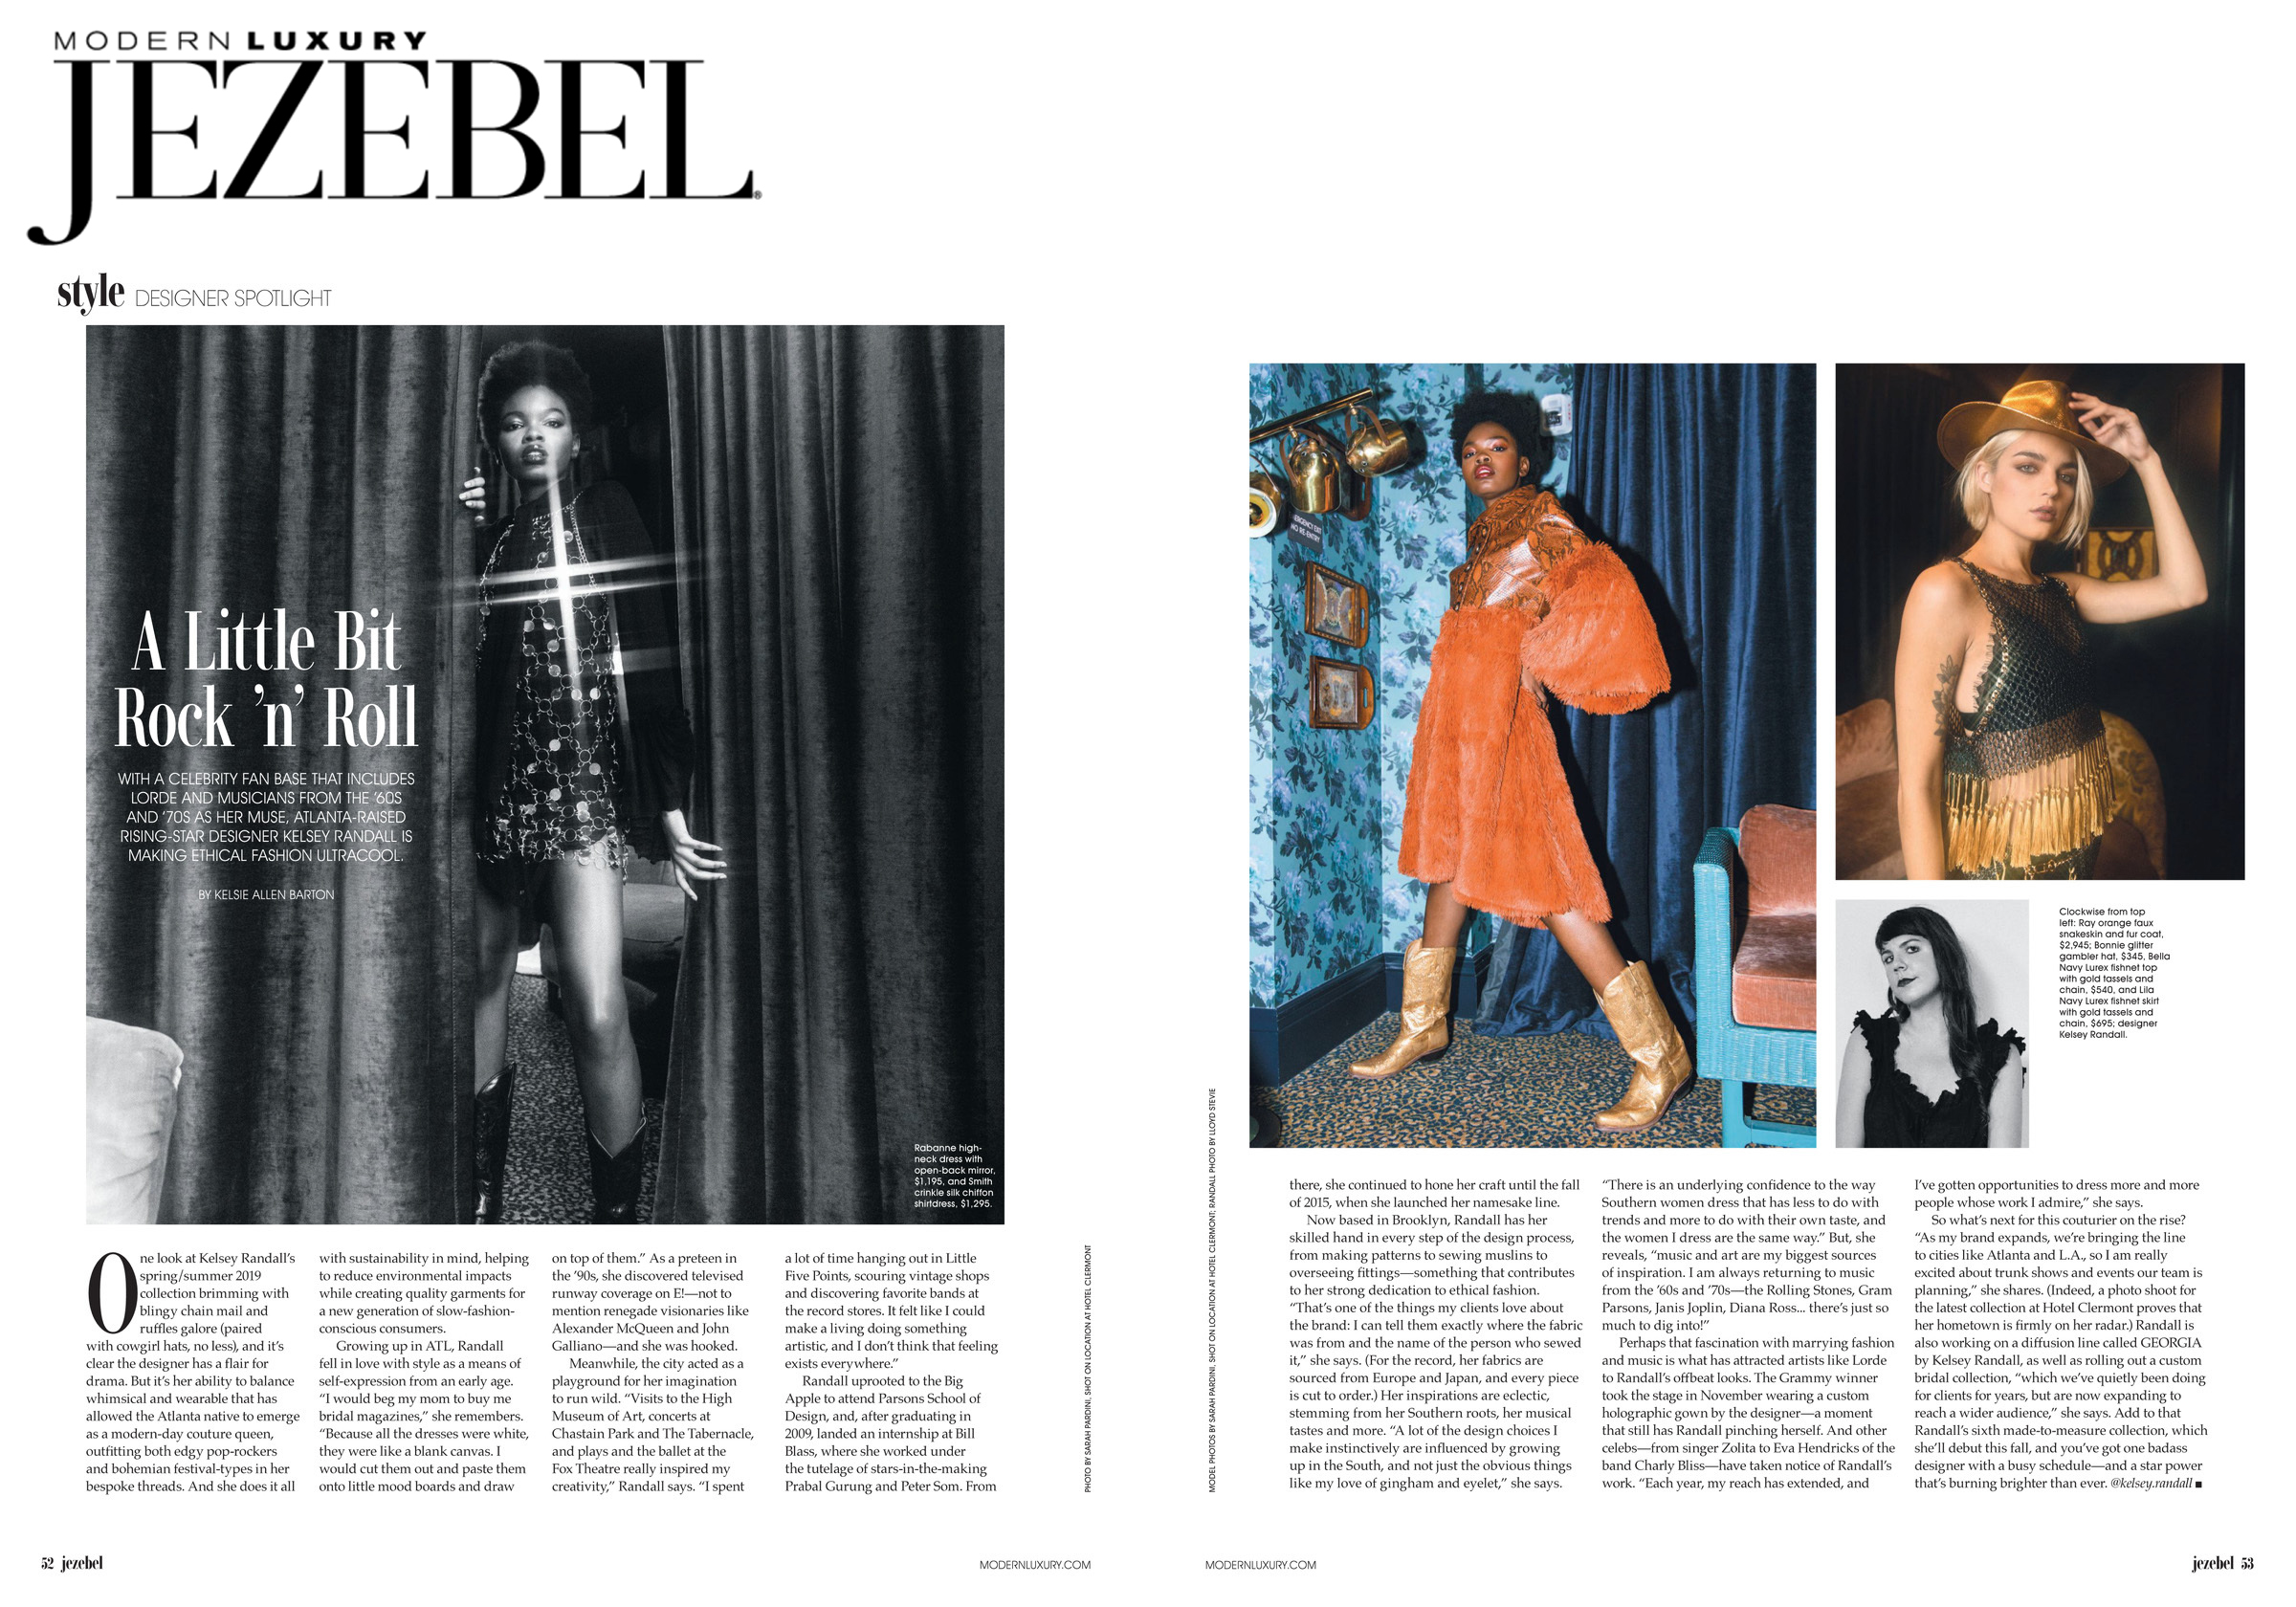 Jezebel Magazine interview fashion editorial feature on Kelsey Randall brand with photos by sarah pardini shot at hotel clermont atlanta